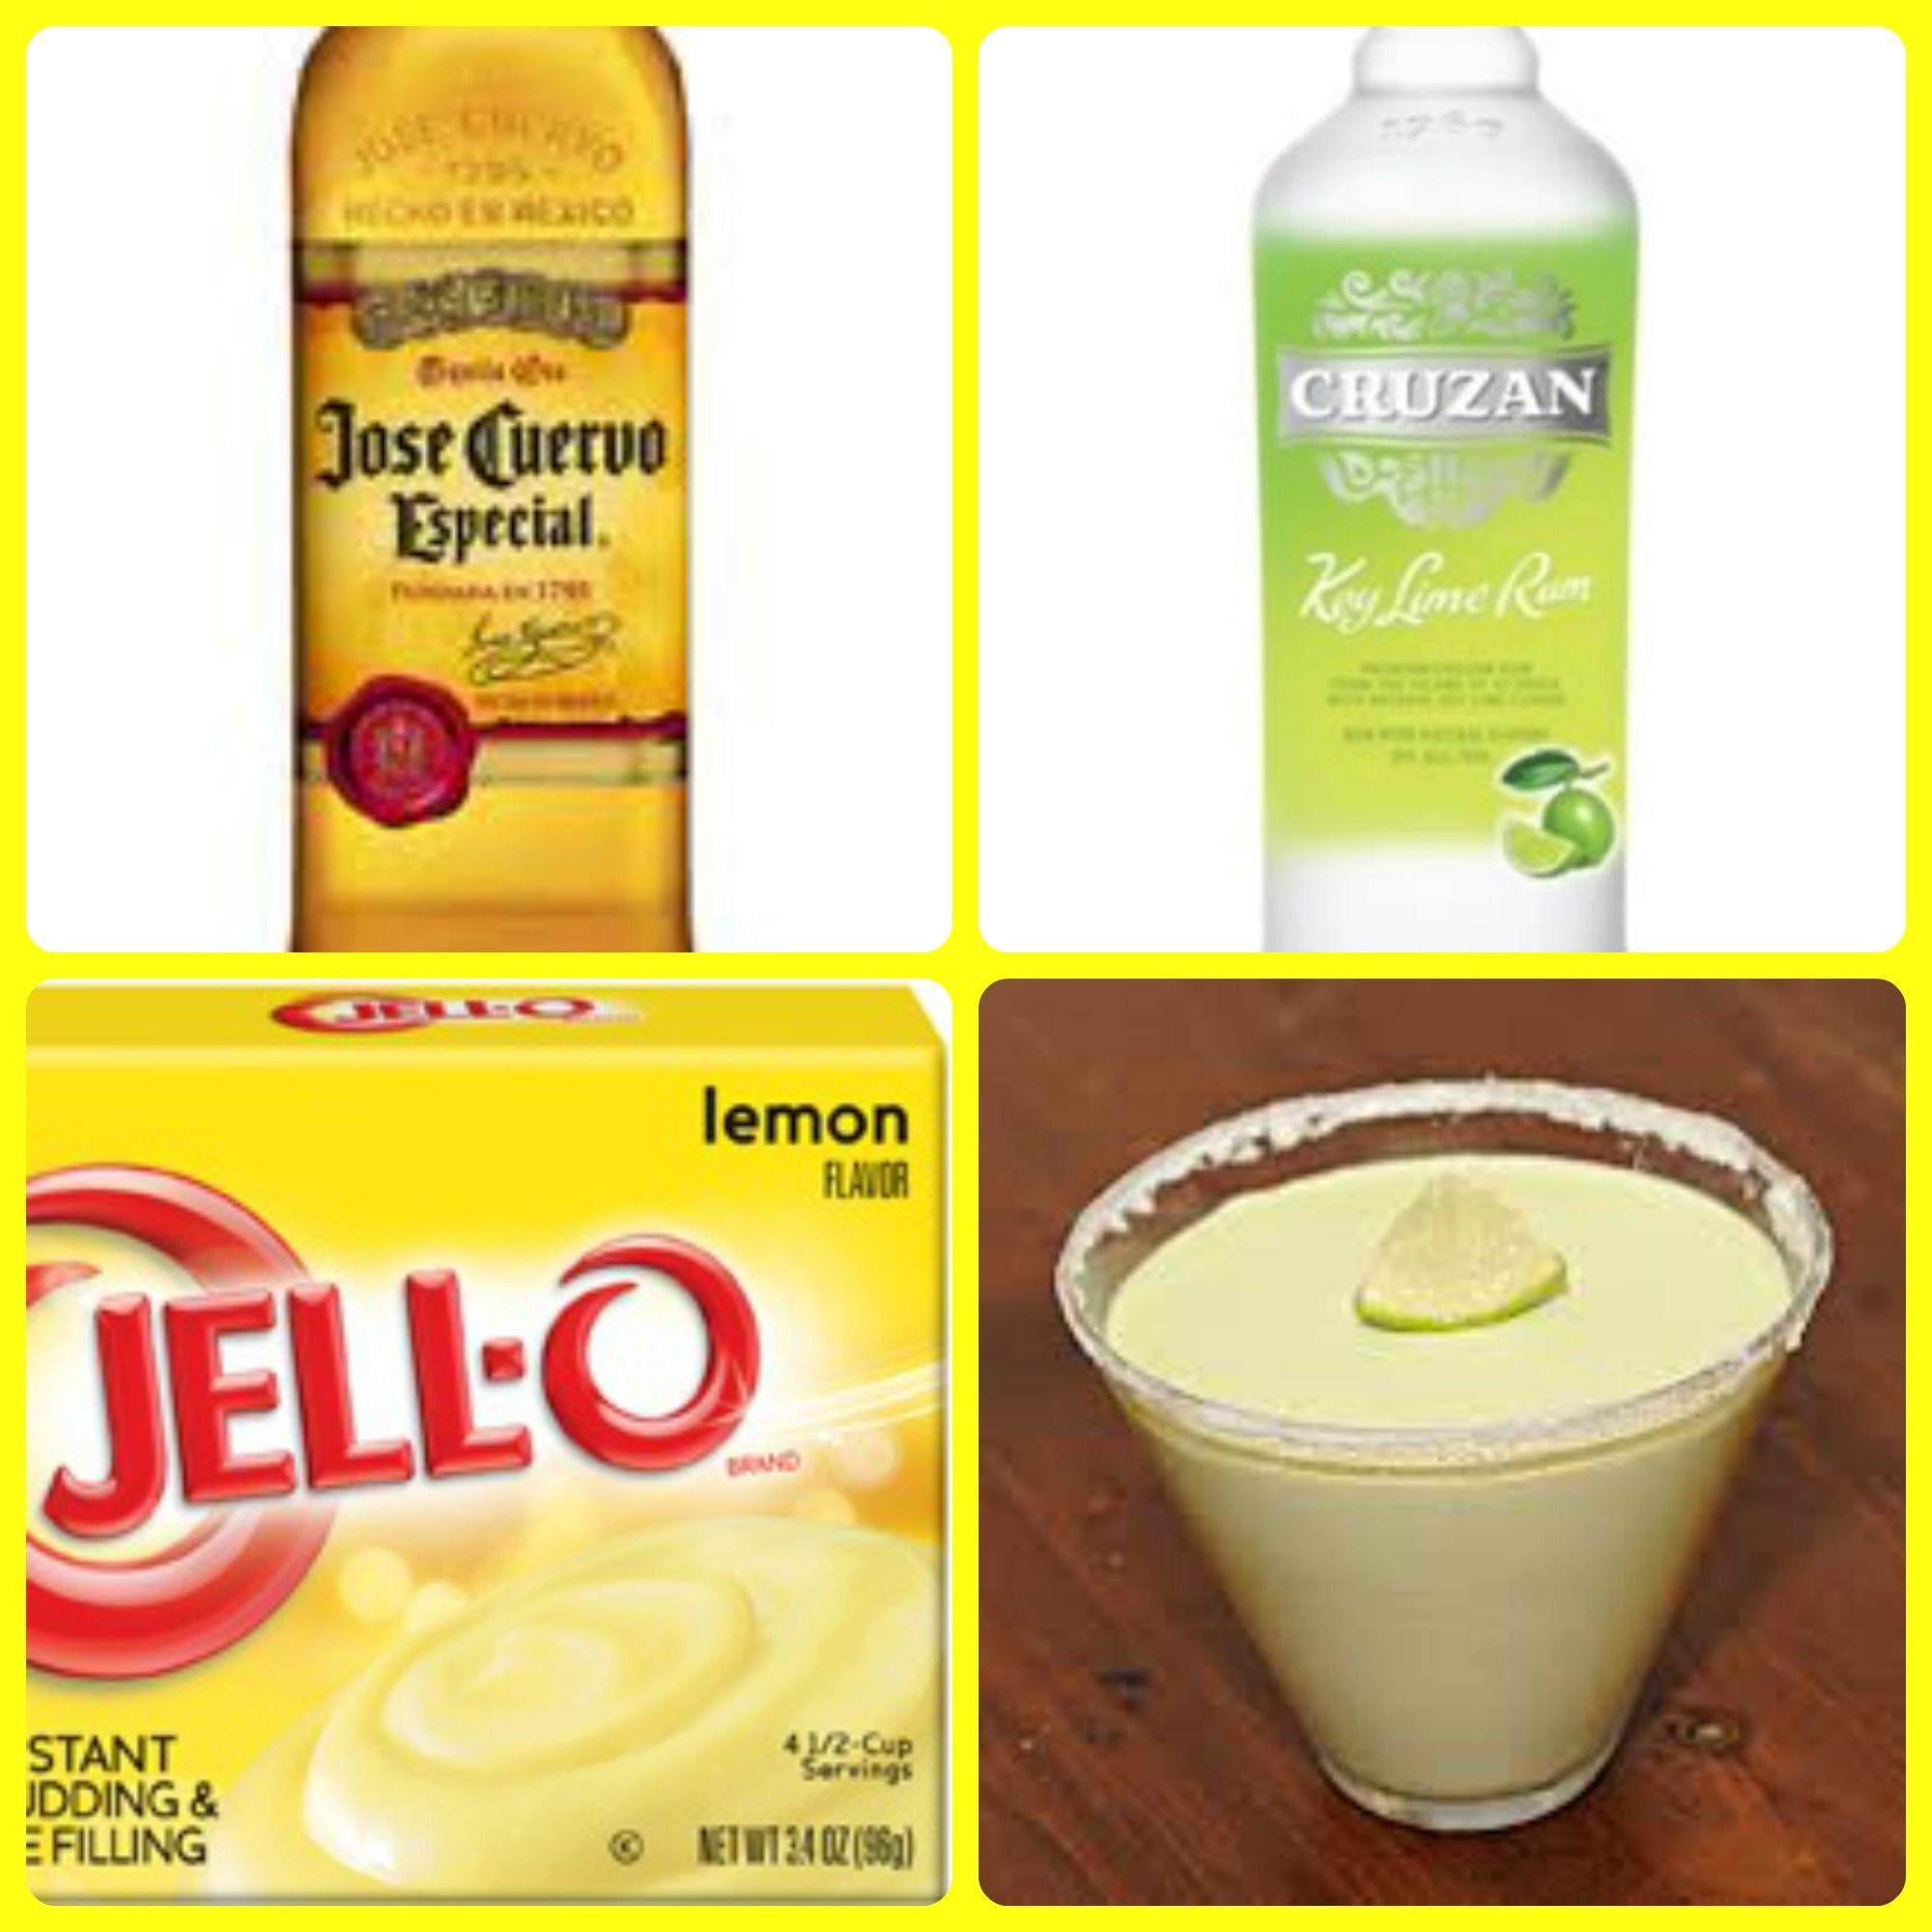 jello instant pudding instructions